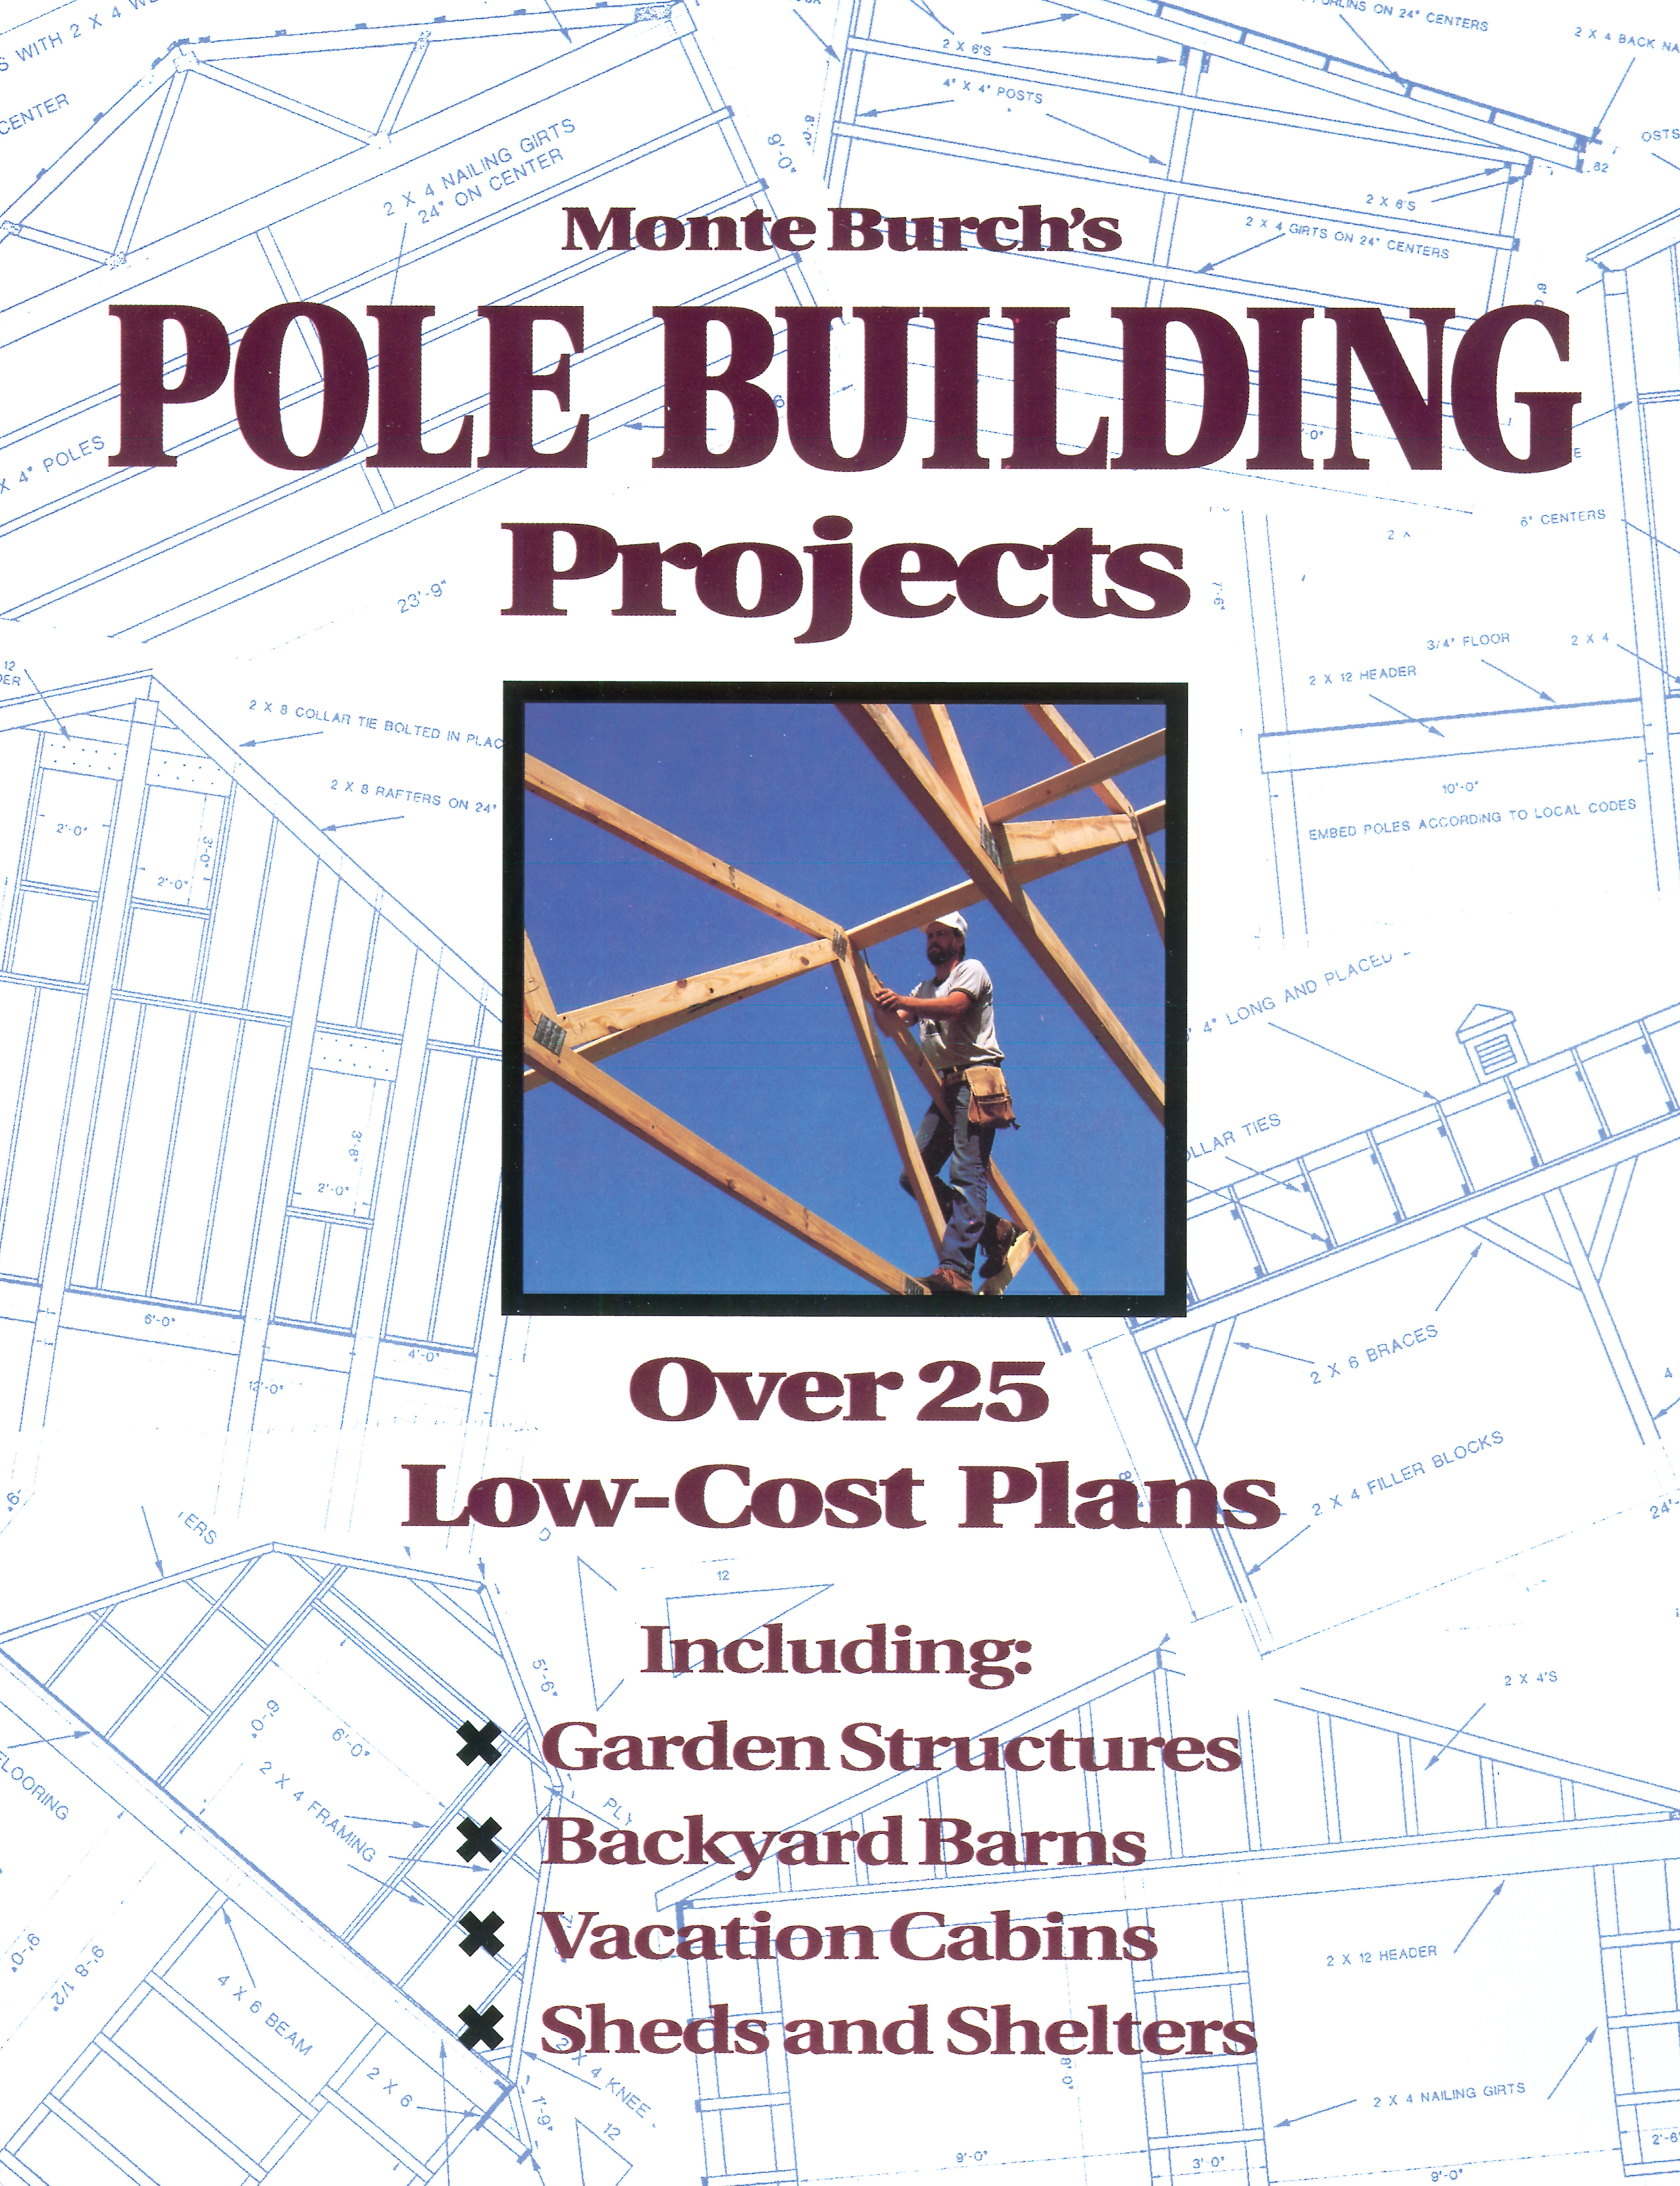 Monte Burch's Pole Building Projects Over 25 Low-Cost Plans - Monte Burch